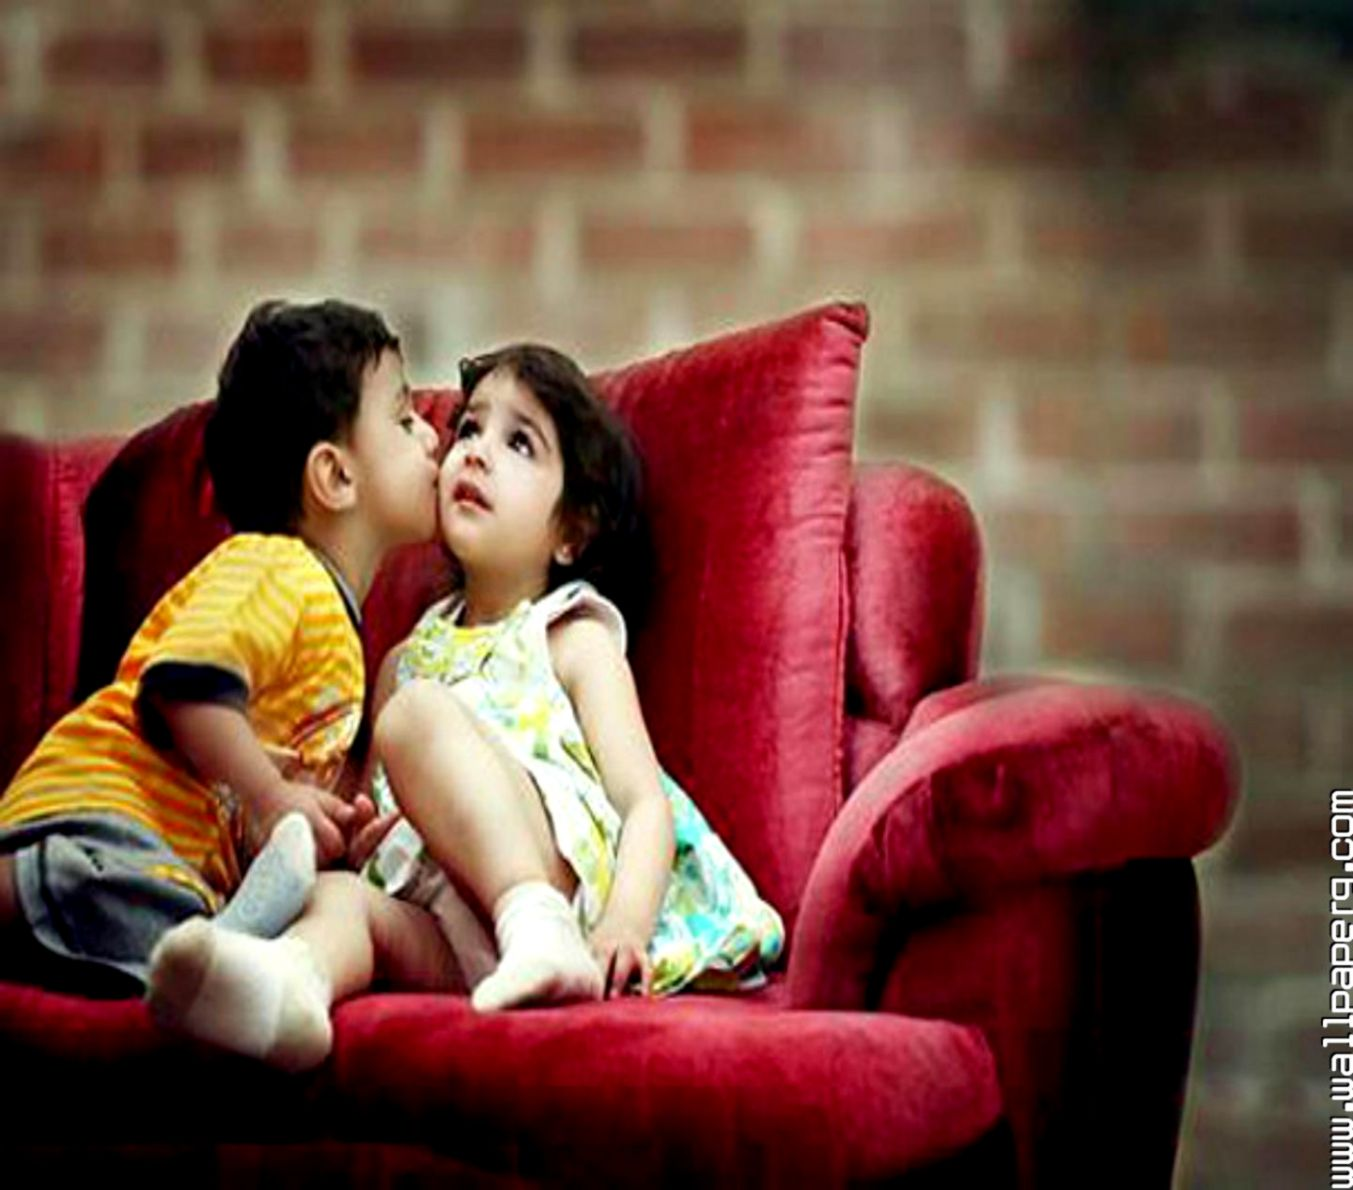 Cute baby couple images